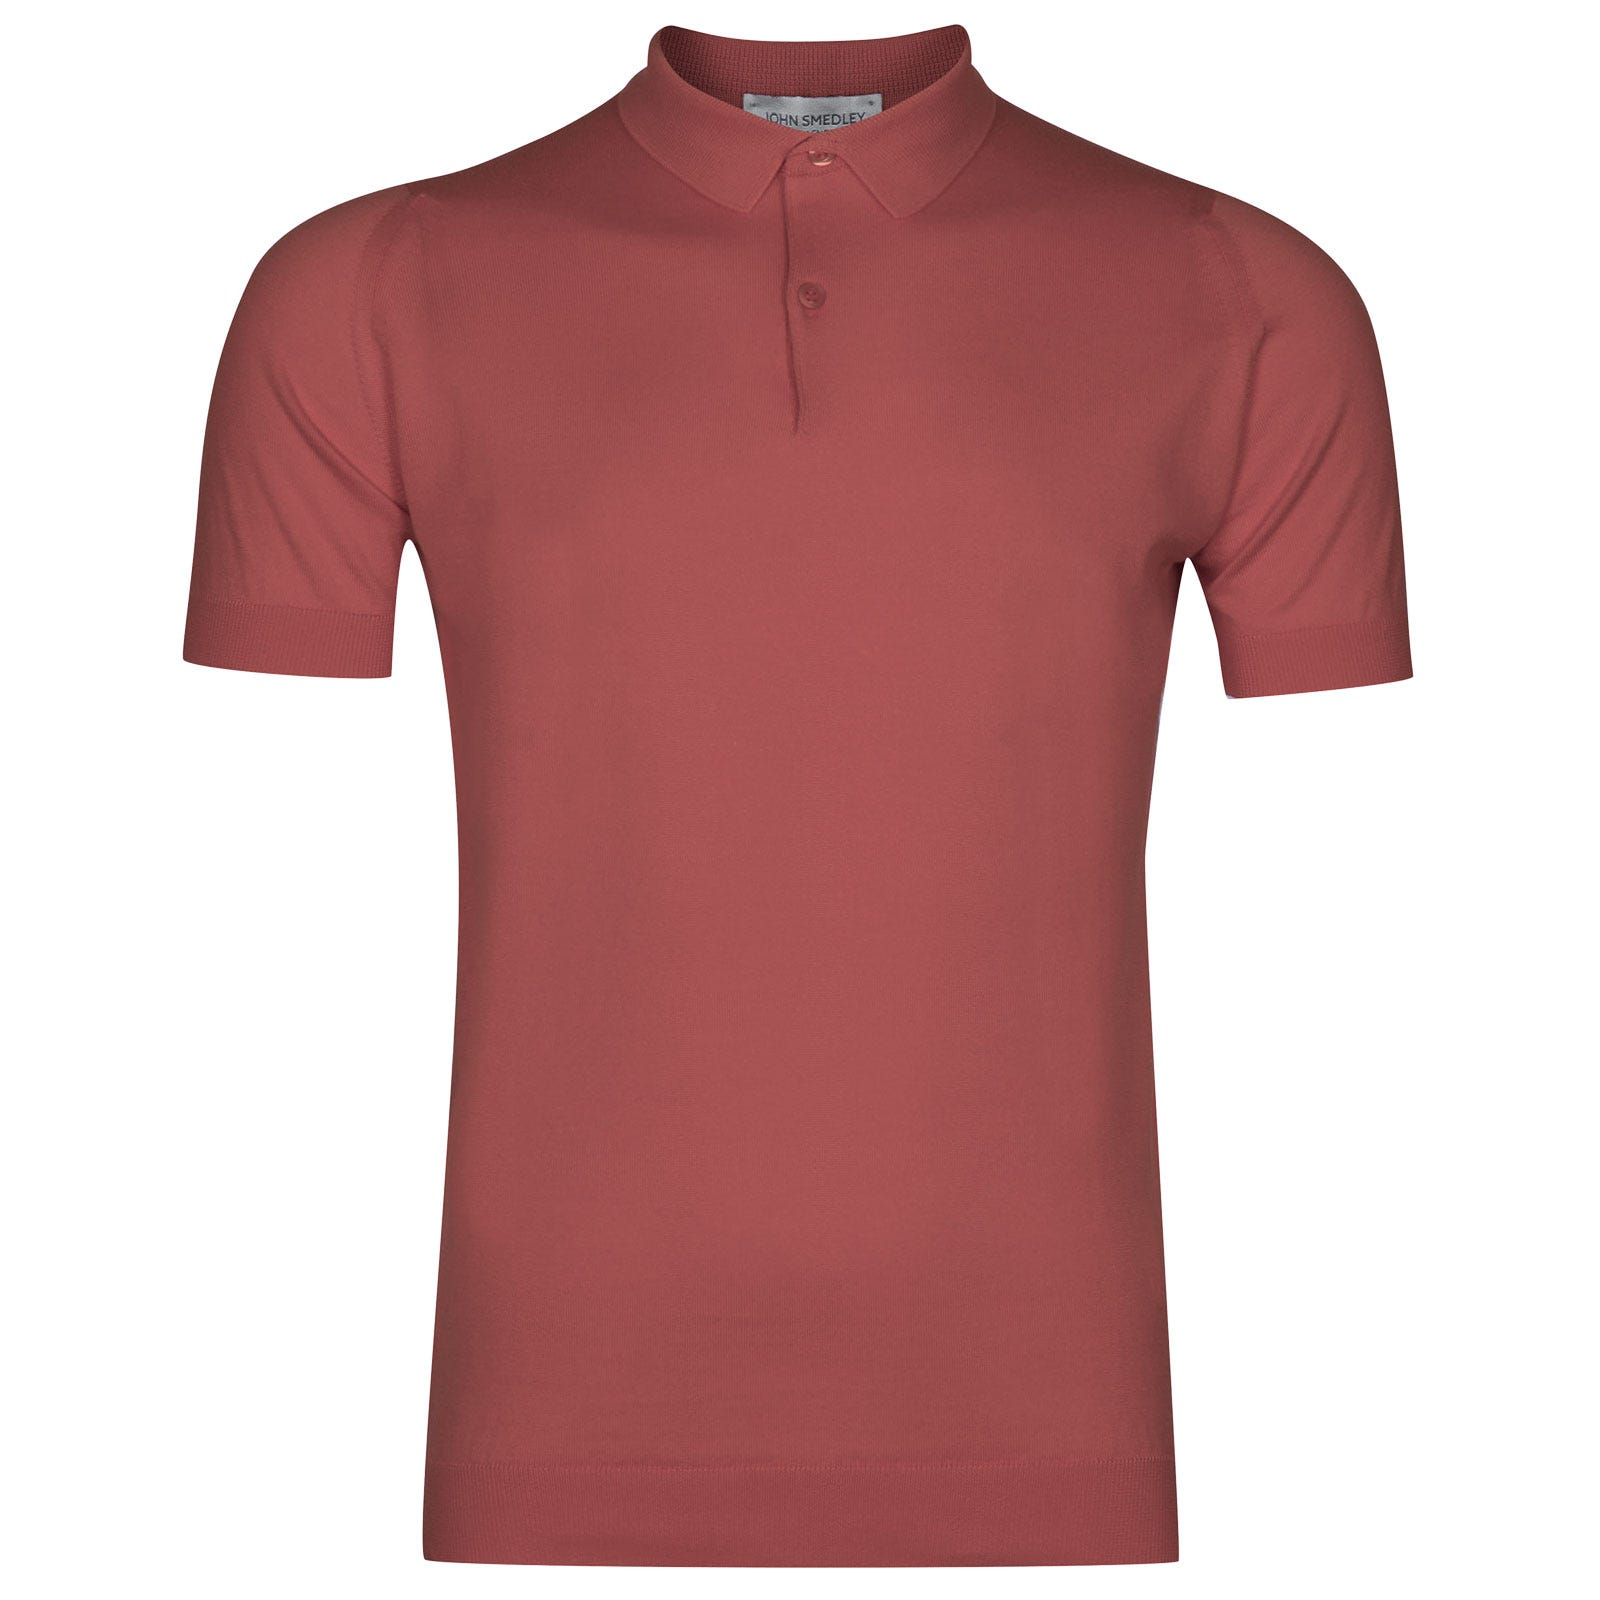 John Smedley rhodes Sea Island Cotton Shirt in Stanton Pink-L